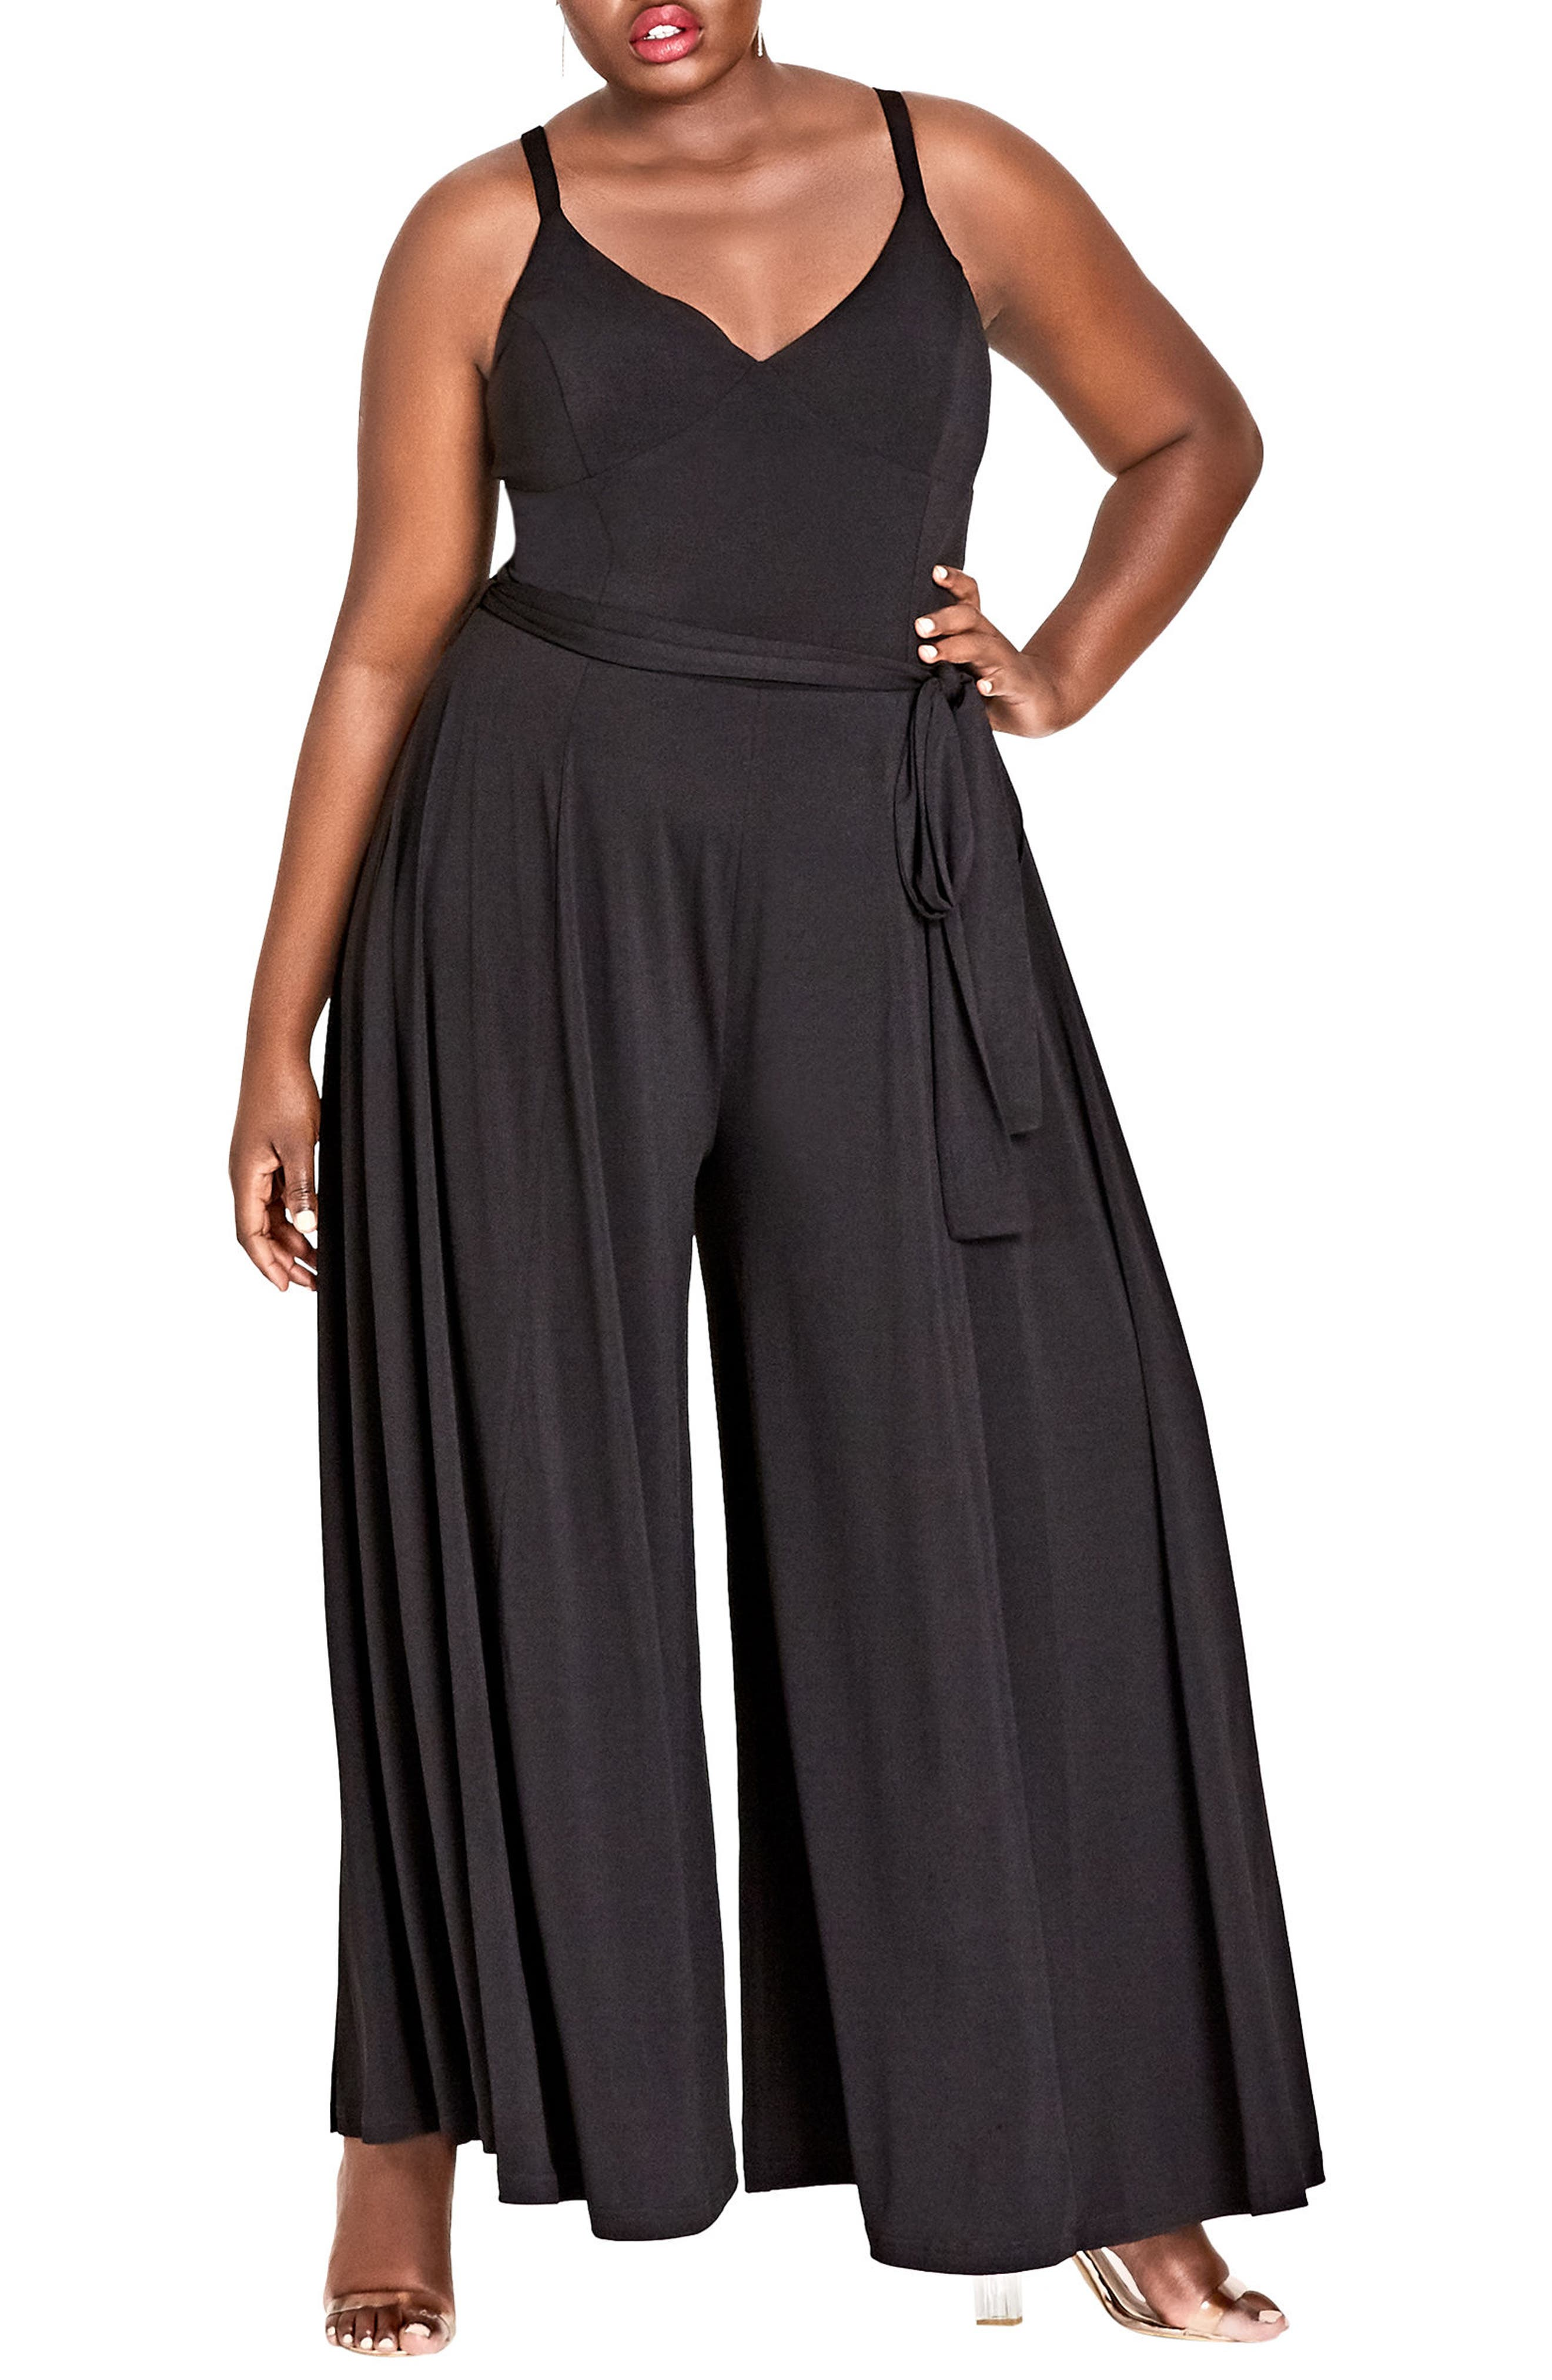 Miss Slinky Jumpsuit,                             Main thumbnail 1, color,                             BLACK